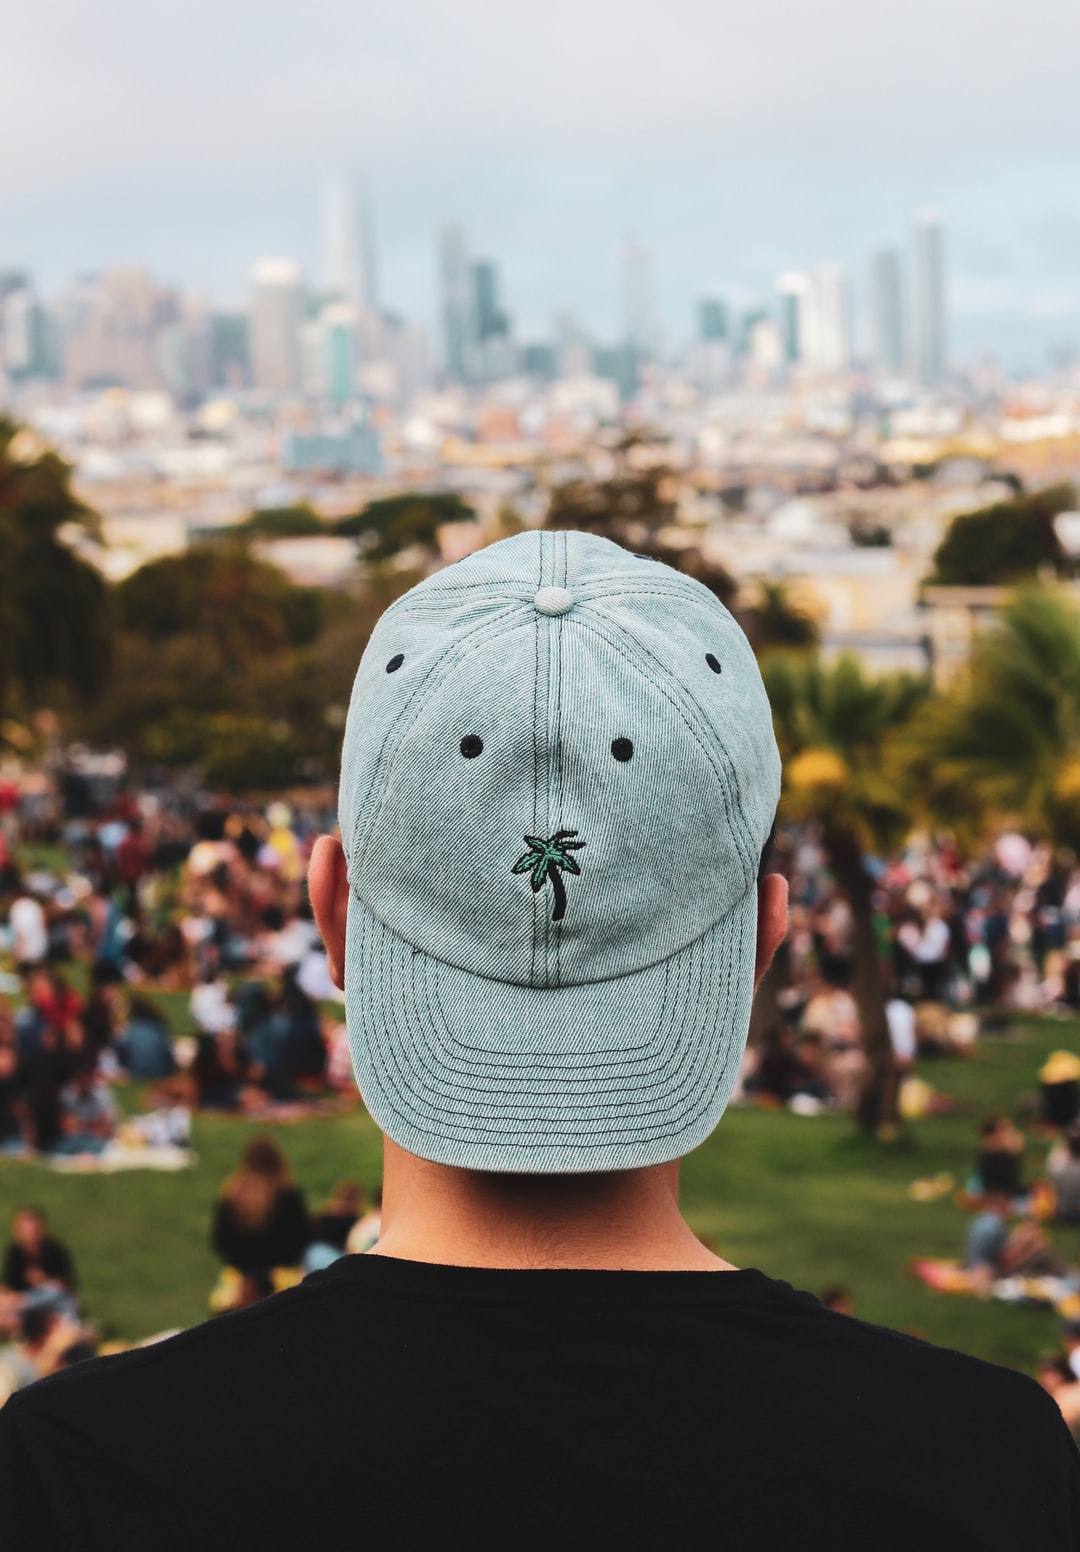 Mission Dolores Park has everything — the views, the open space, the lively people, and most importantly, the palm trees. I had one of my favorite hats with me that ended up being perfect for the occasion. I let my friend borrow it to create this shot — def one of my favorites.